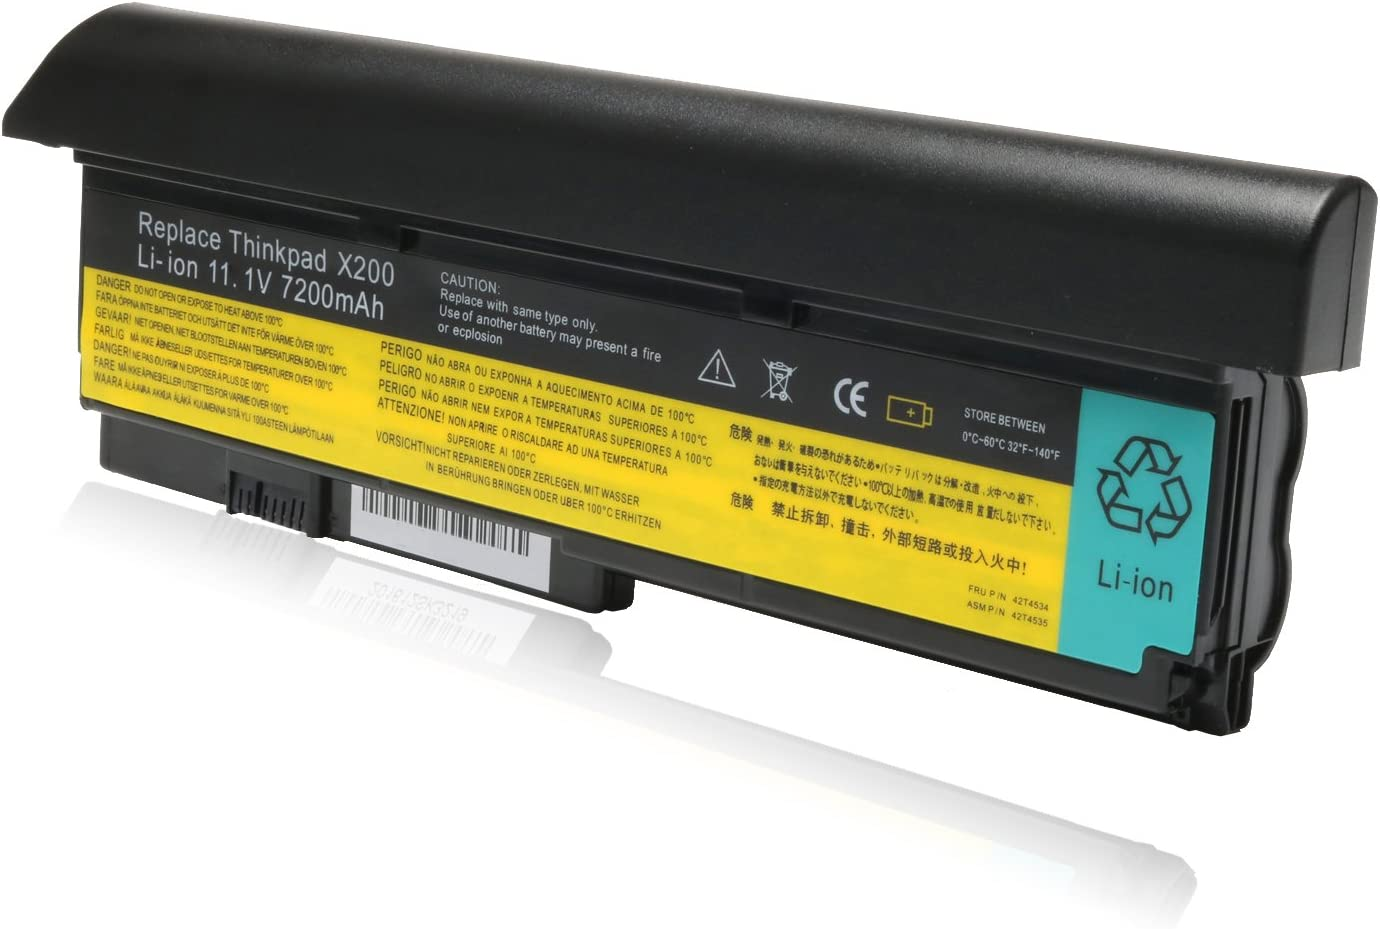 11.1V 7200mAh New Laptop Battery for Lenovo IBM ThinkPad X200 X200s X201 X201i X201s Series-P/N: 42T4534 42T4535 42T4543 42T4650 42T4834 42T4835